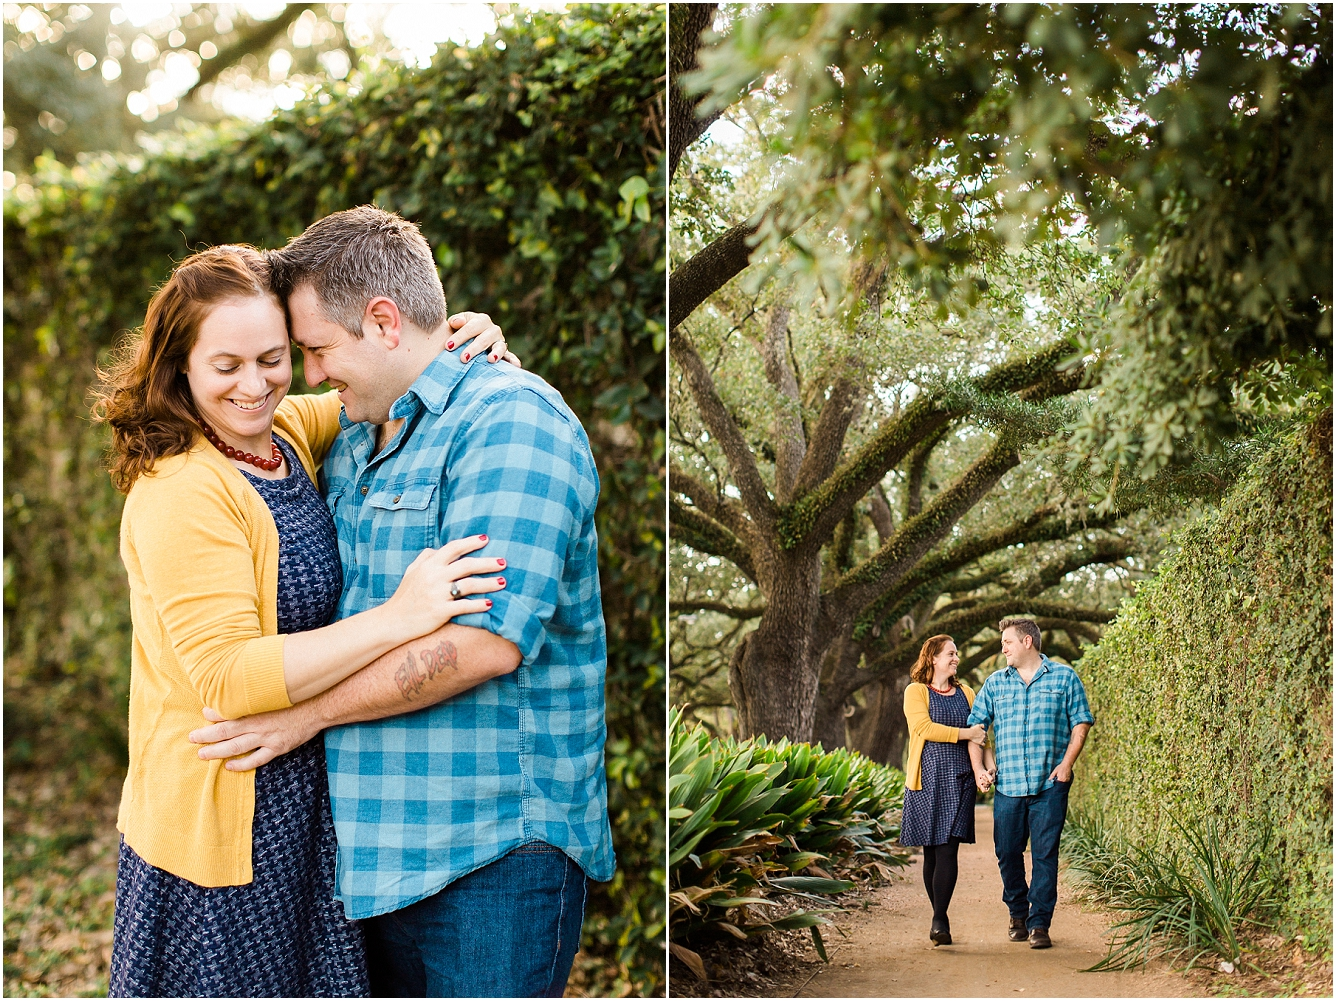 Hermann Park Anniversary Session Houston TX Photographer_05